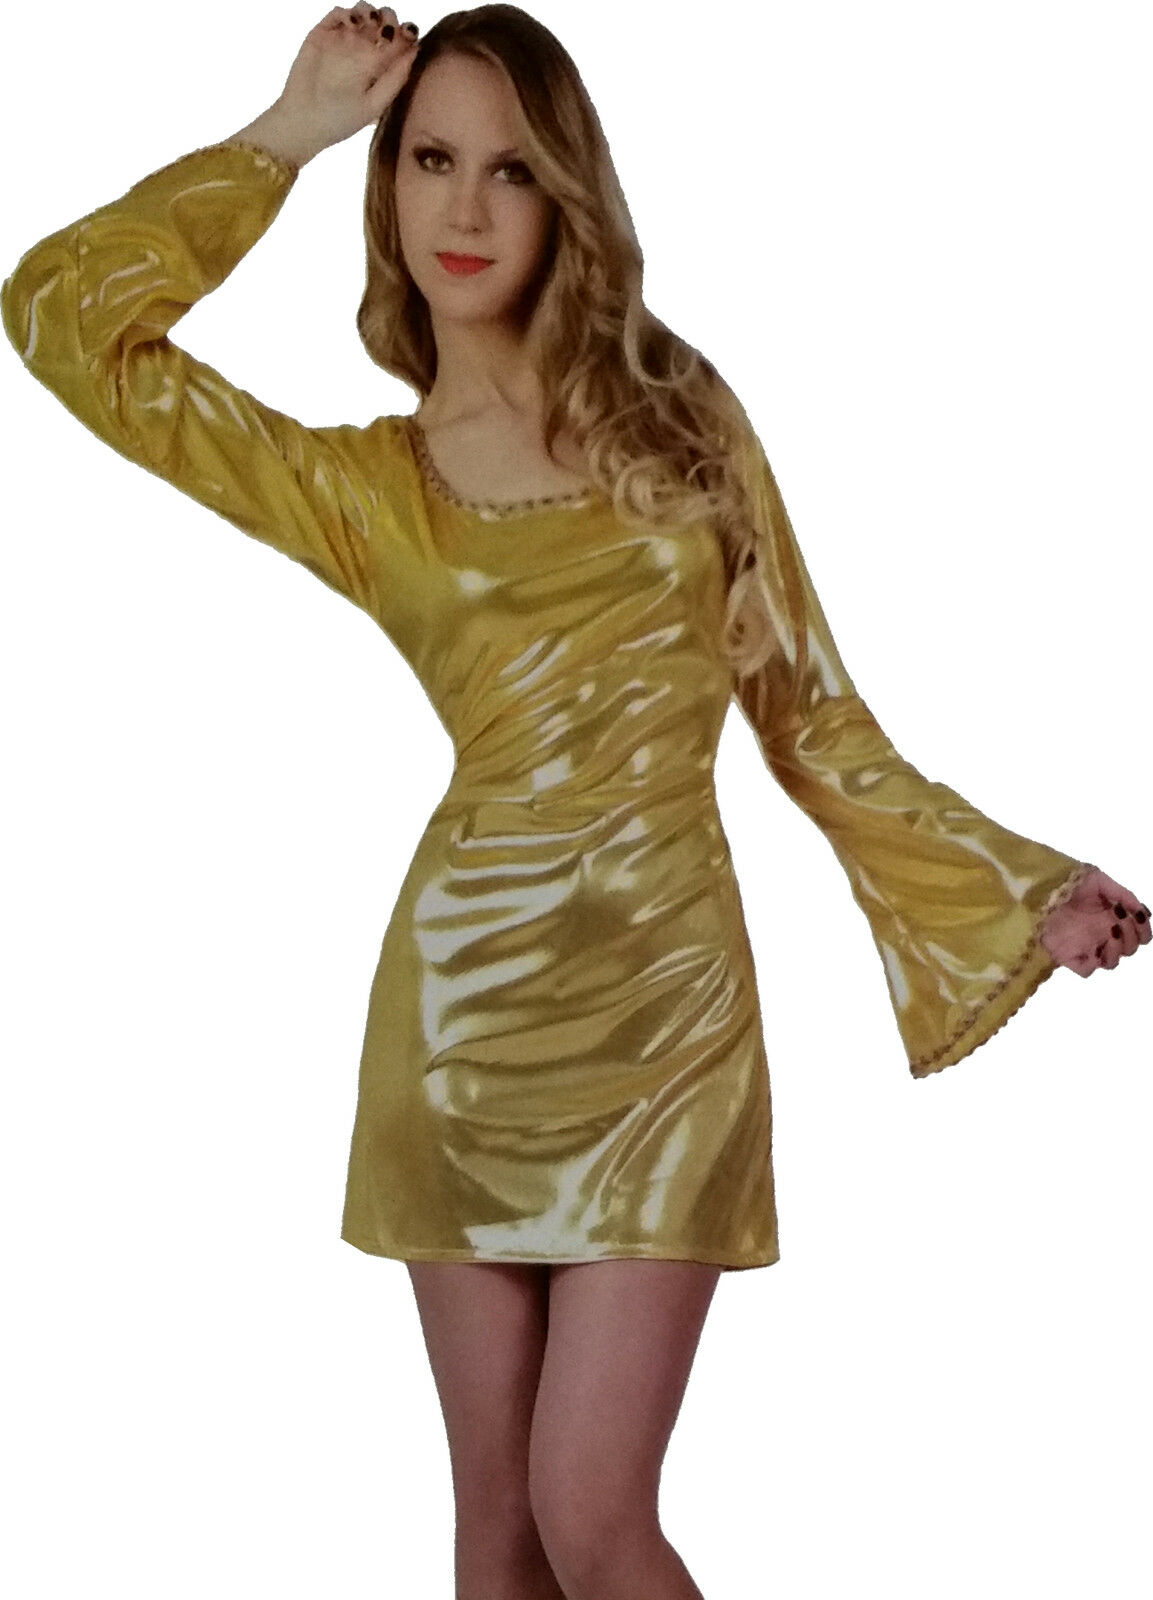 DISKO KLEID GOLD 40/42 Party Outfit Mottoparty Clubkleid Partykleid ...